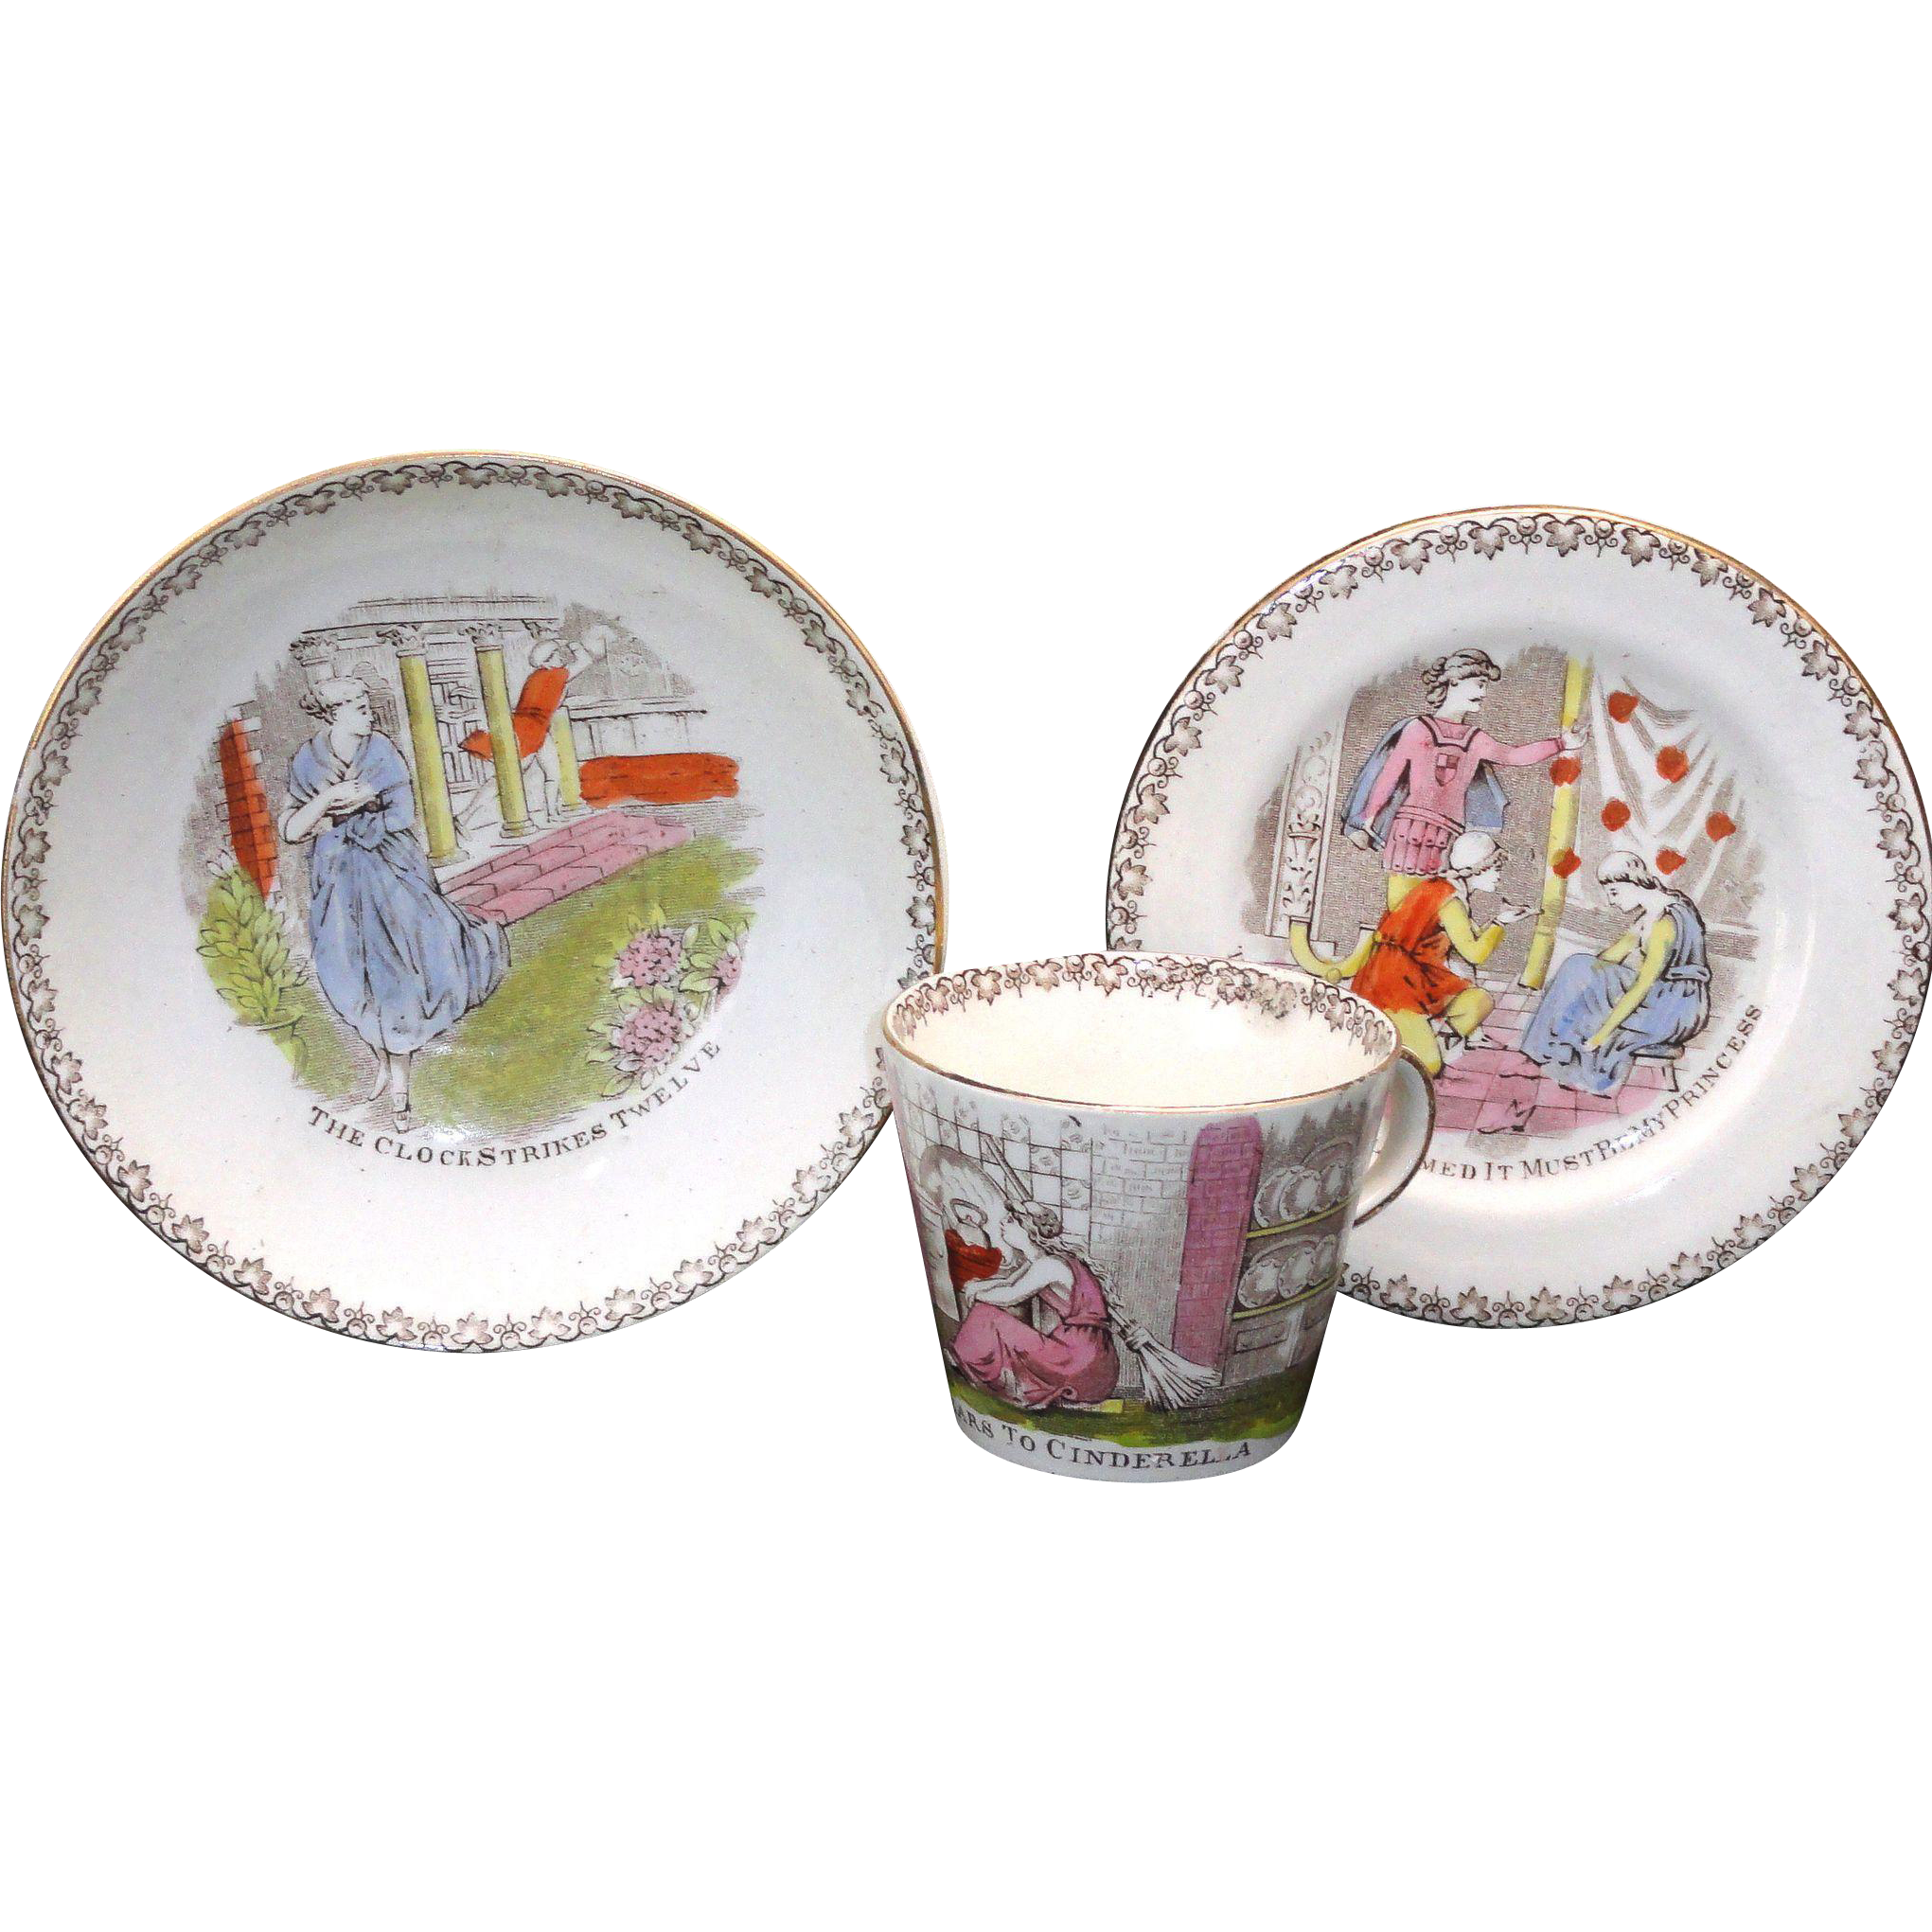 Cinderella & Prince Charming Childs Tea Set TRIO Sepia Transferware c1880